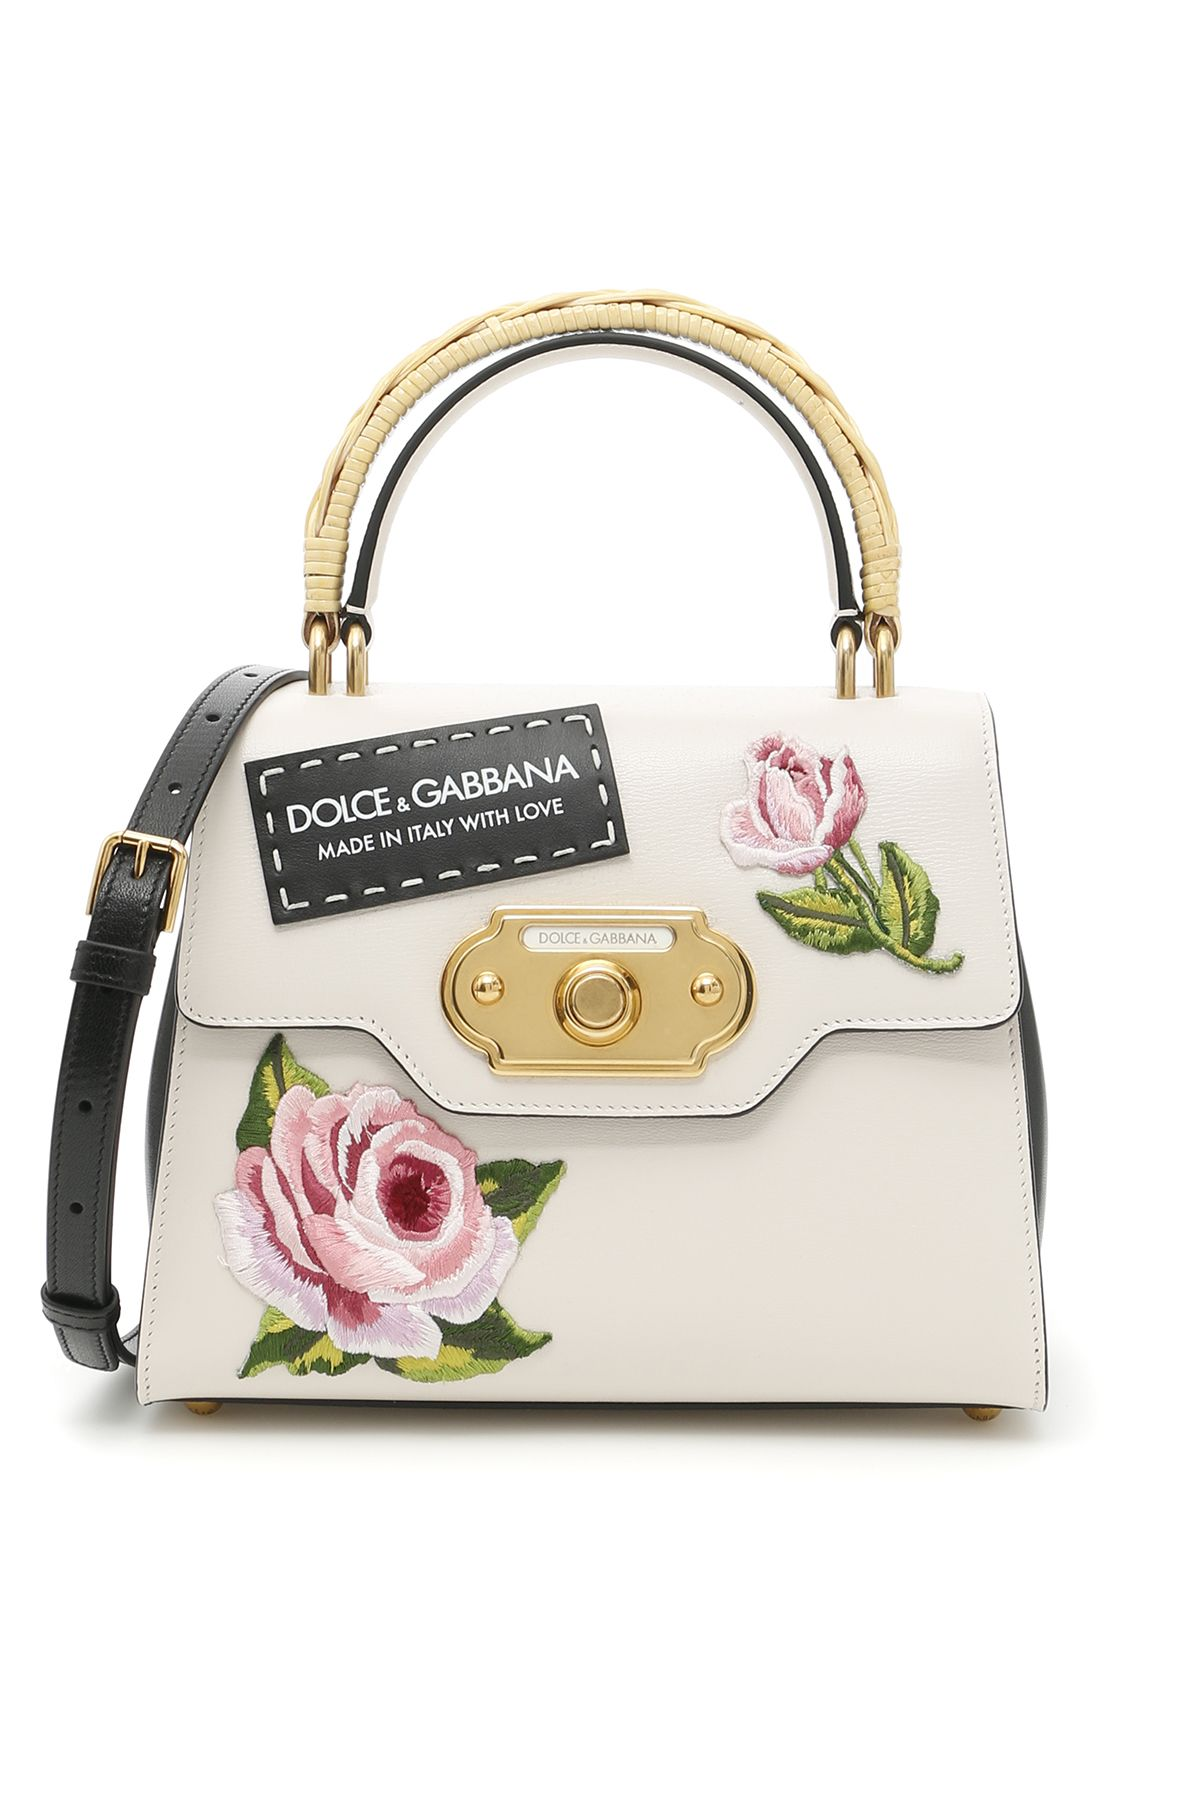 Dolce & Gabbana Welcome handbag